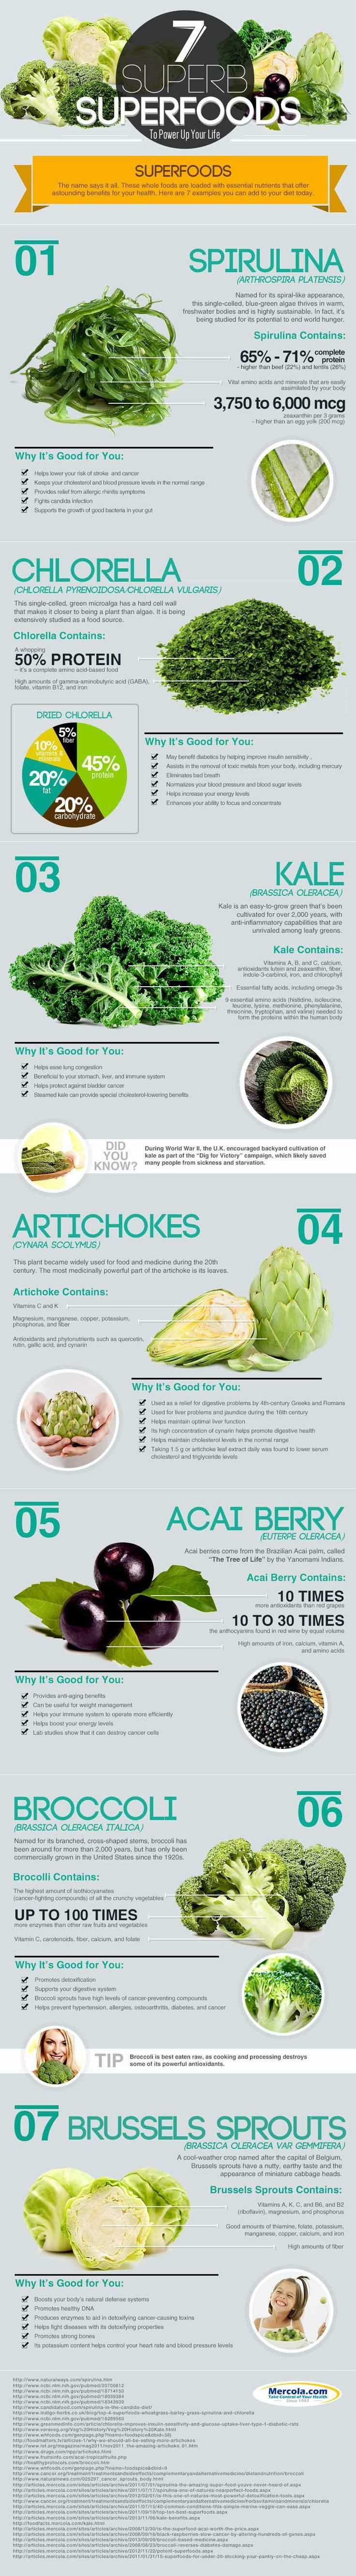 """Check out the """"7 Superb Superfoods to Power Up Your Life"""" infographic and discover some of the delicious secrets to optimal health and longevity. increase energy during pregnancy"""